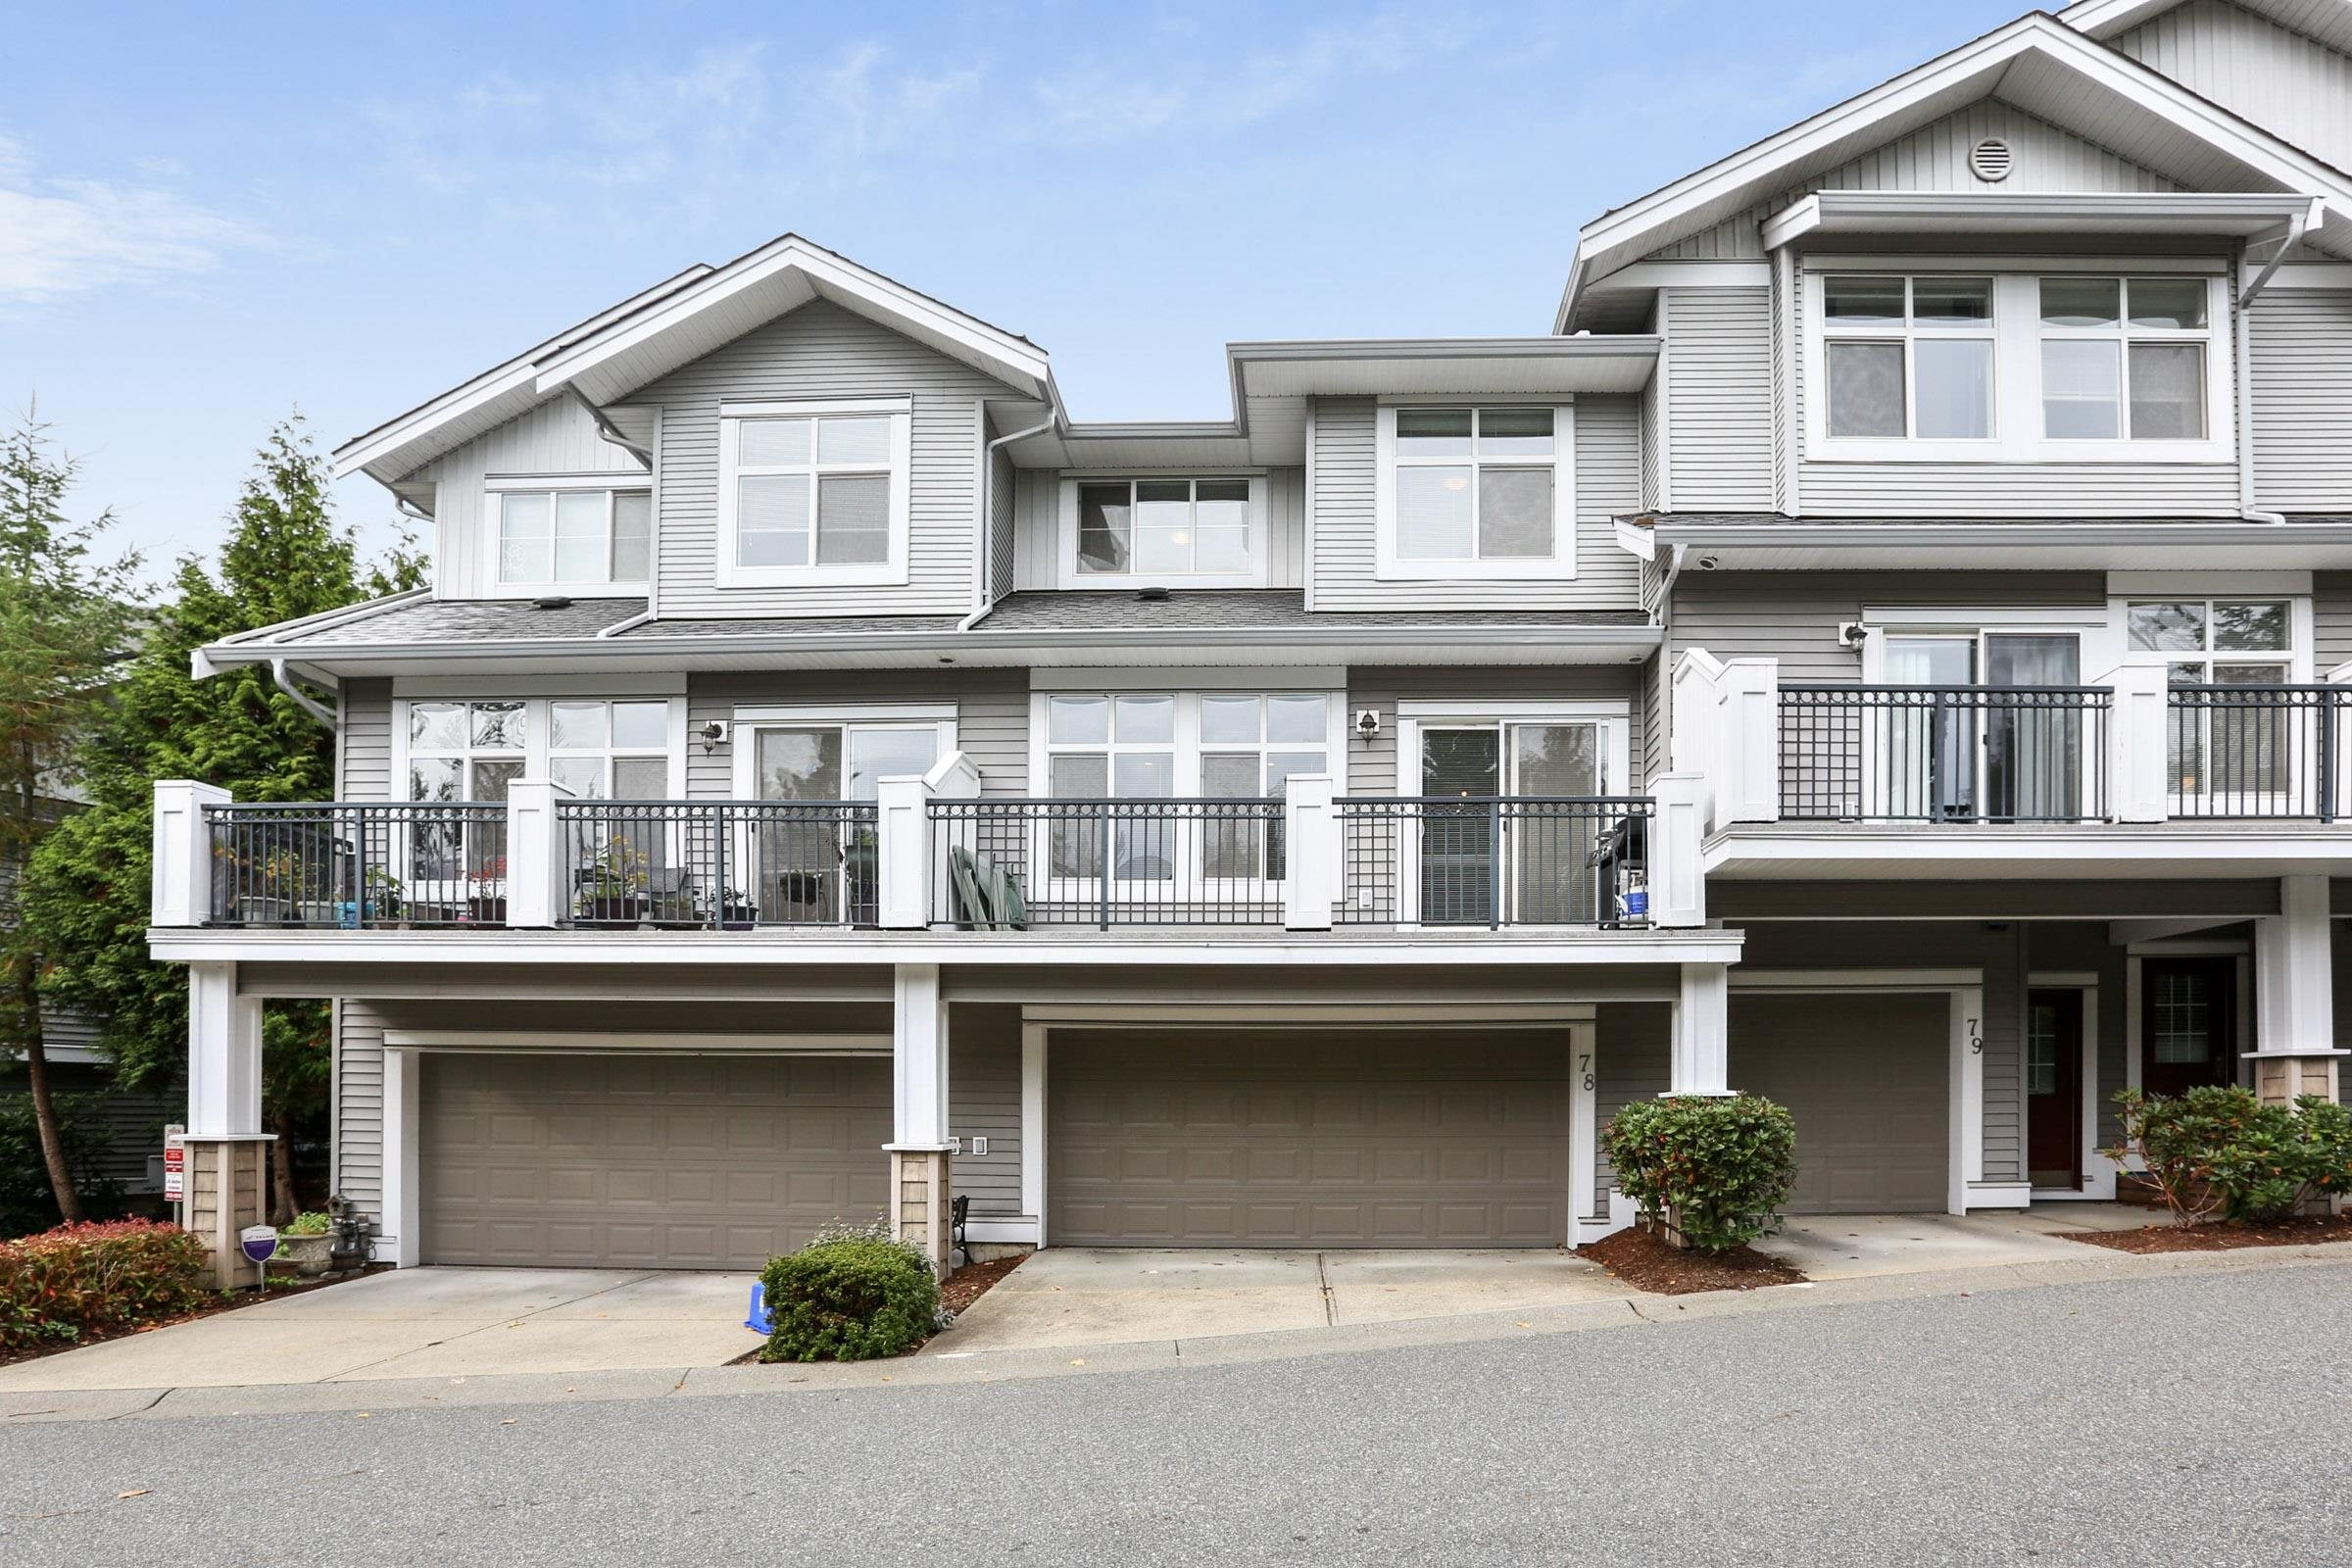 78 20449 66 AVENUE - Willoughby Heights Townhouse for sale, 3 Bedrooms (R2625319) - #1